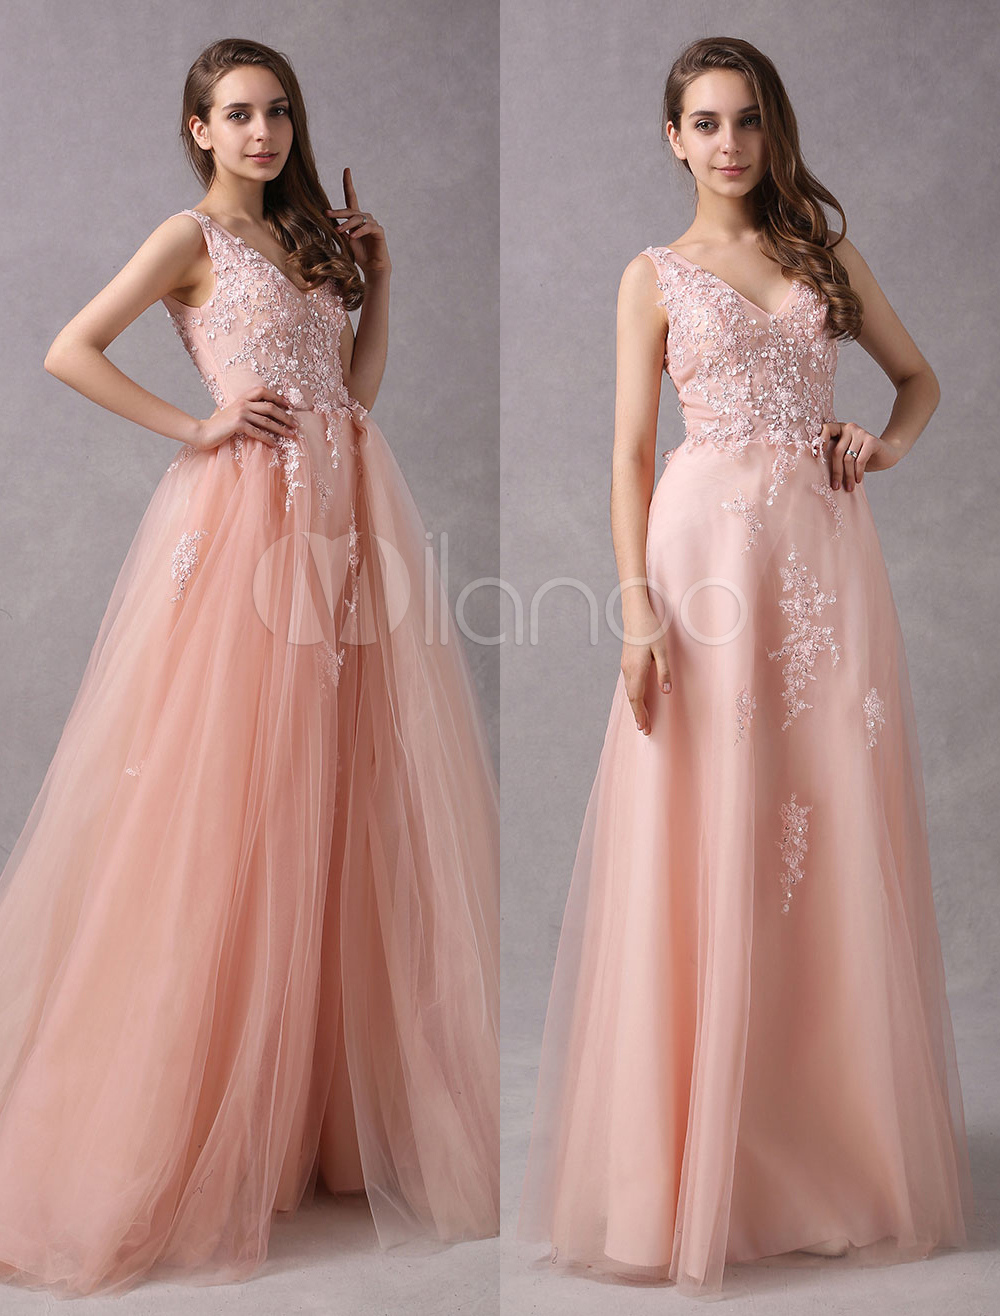 b60bbf02 ... Lace Beading Sleeveless Detachable Train Prom Gowns-No. 12. 45%OFF.  Color:Blush Pink